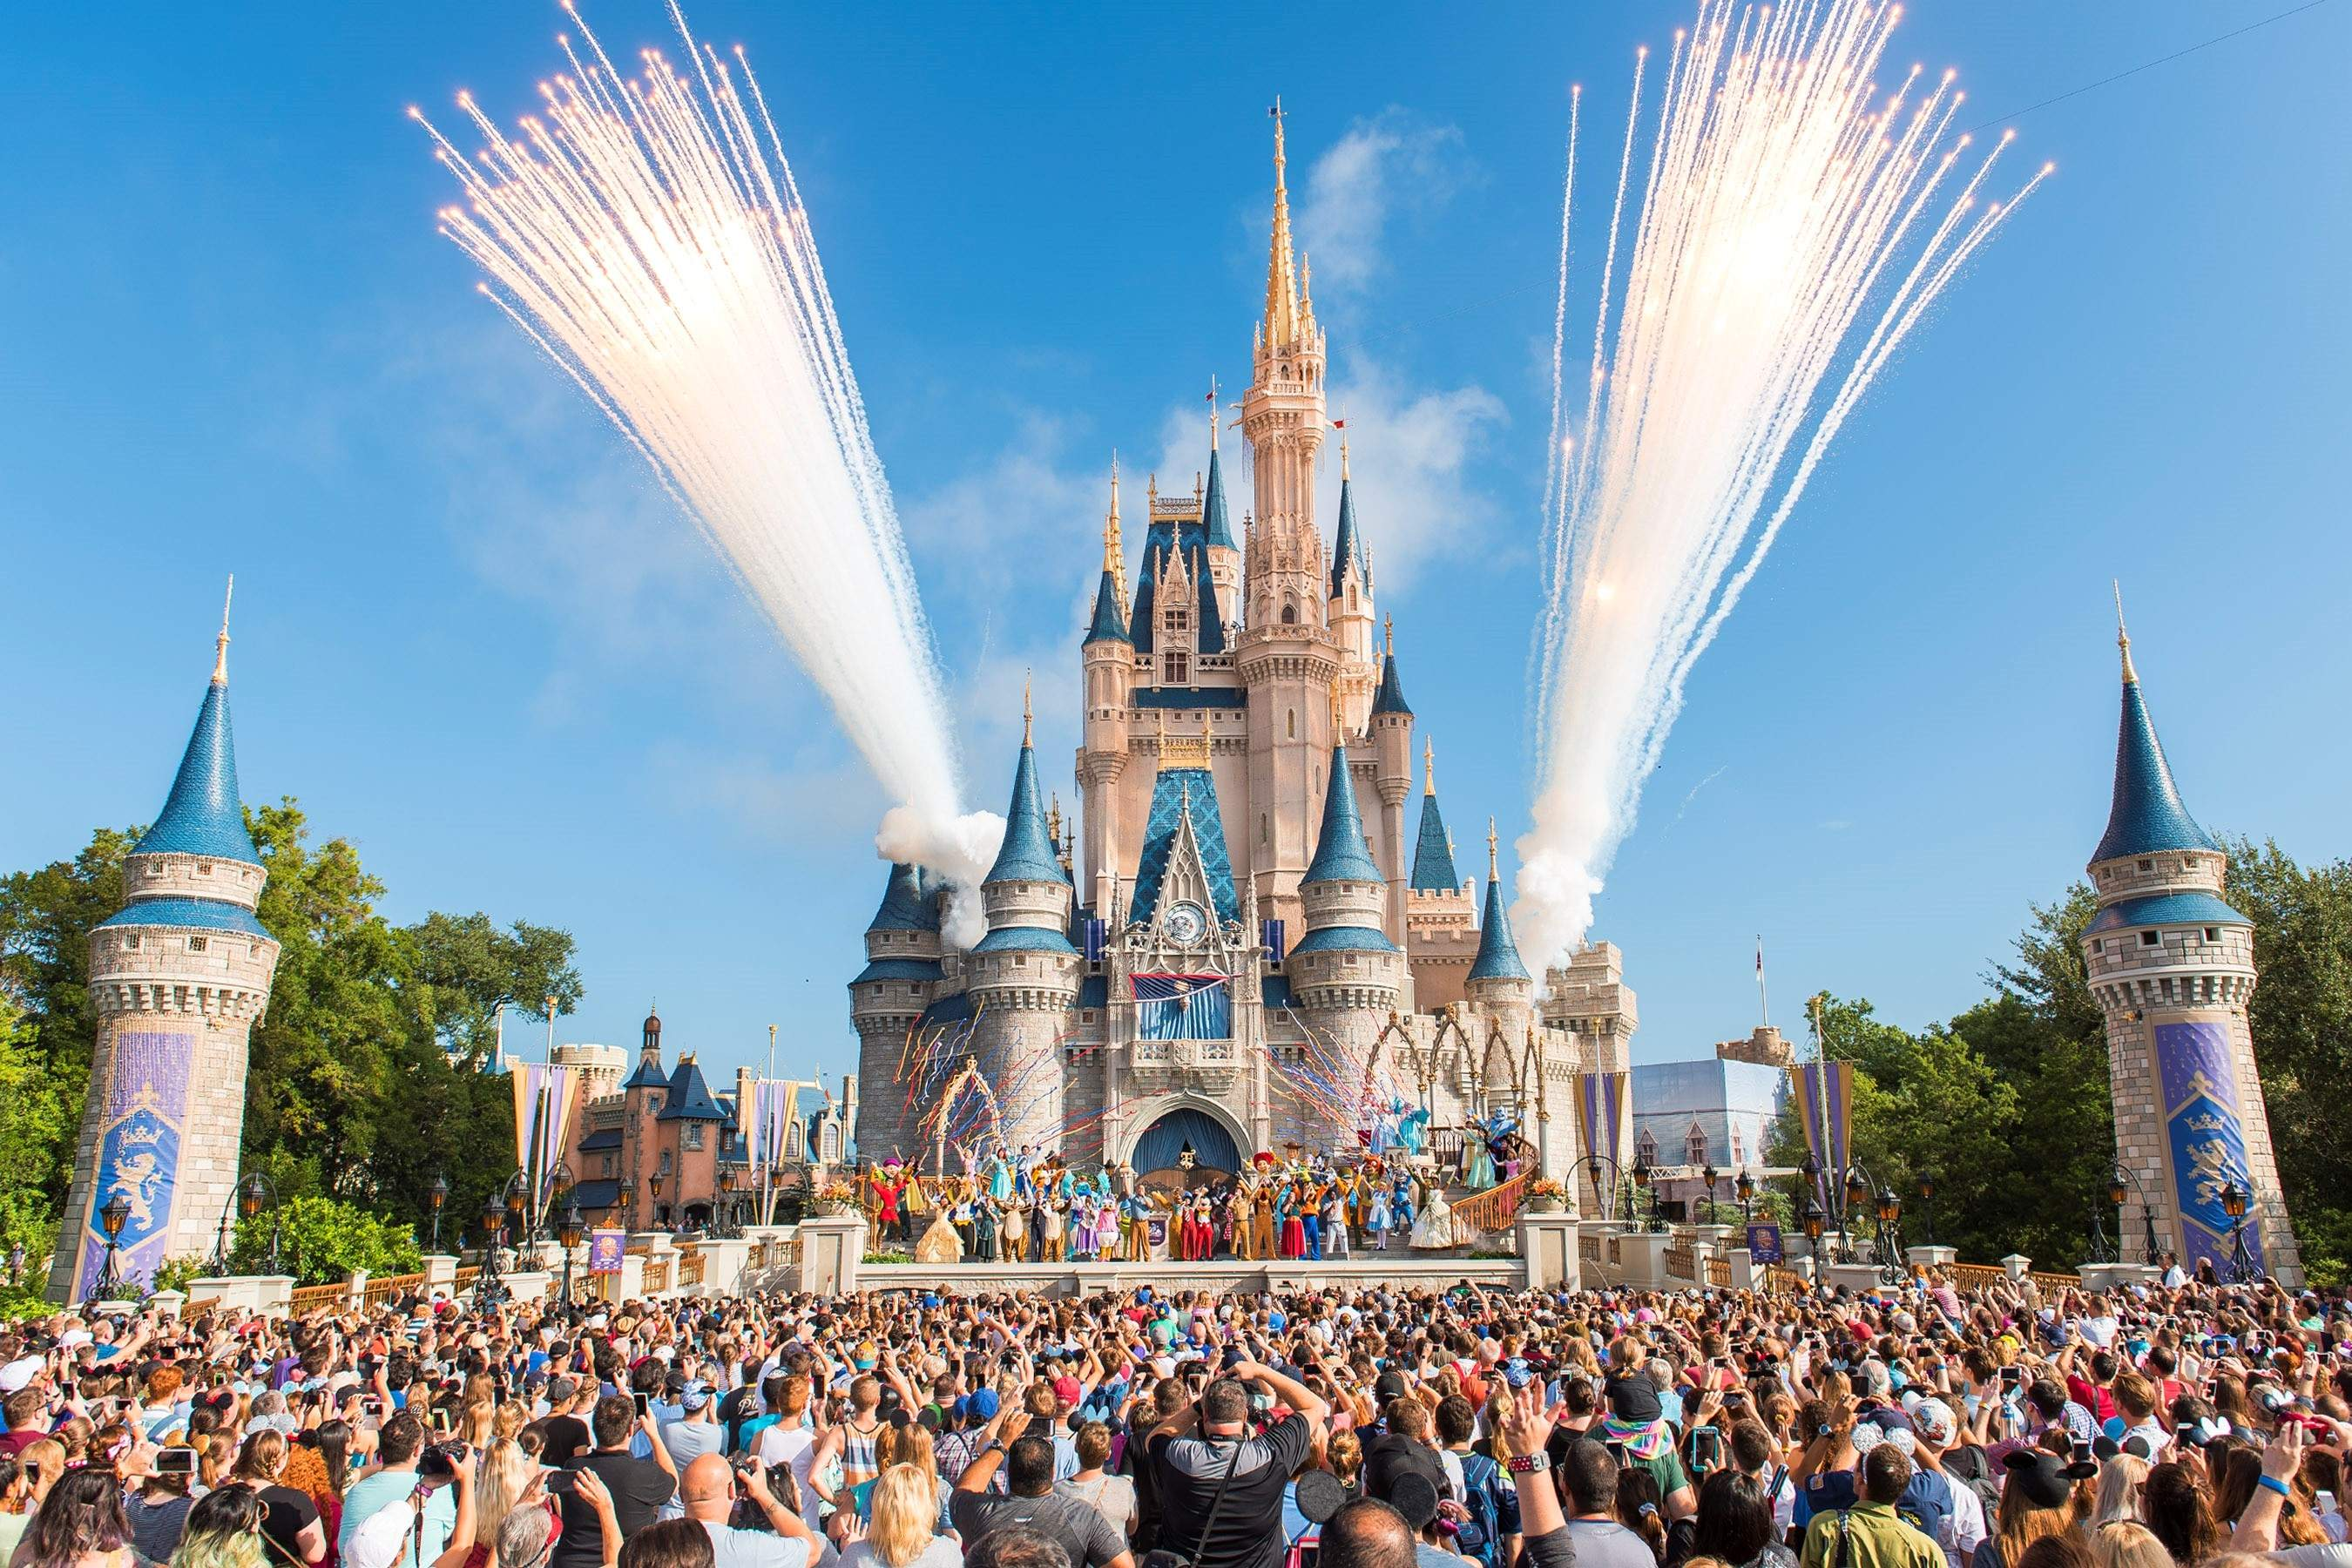 Is the annual pass worth it? As Disney changes pricing